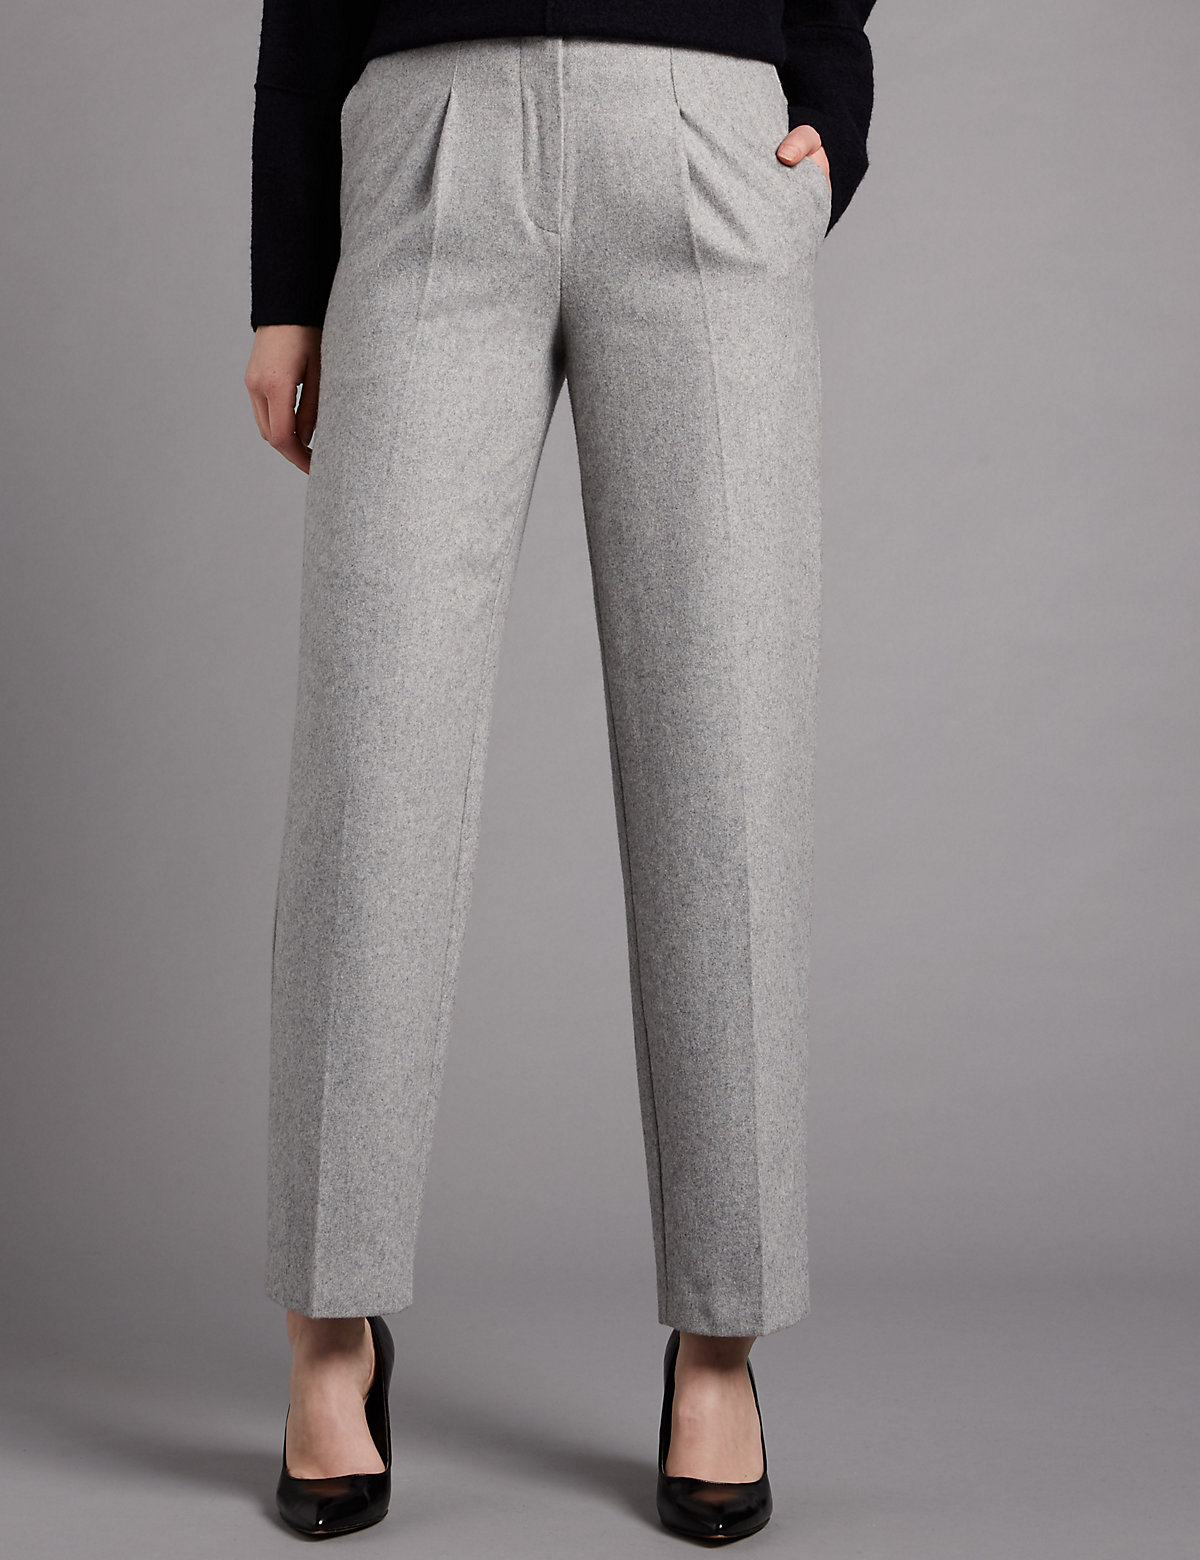 Autograph Pleated Front Trousers with Wool